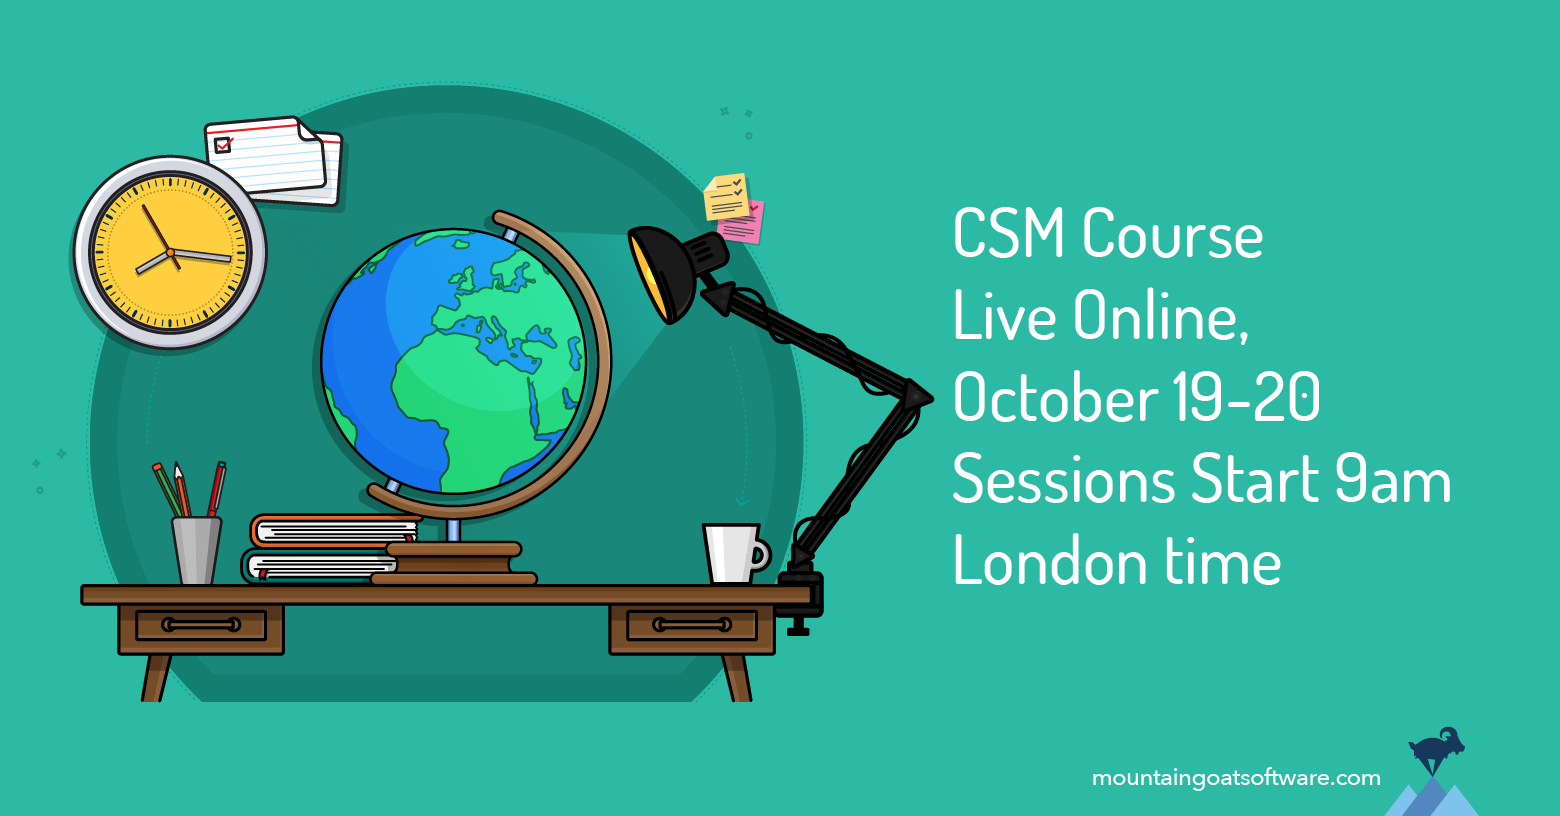 A European Time Zone Virtual CSM Course in October